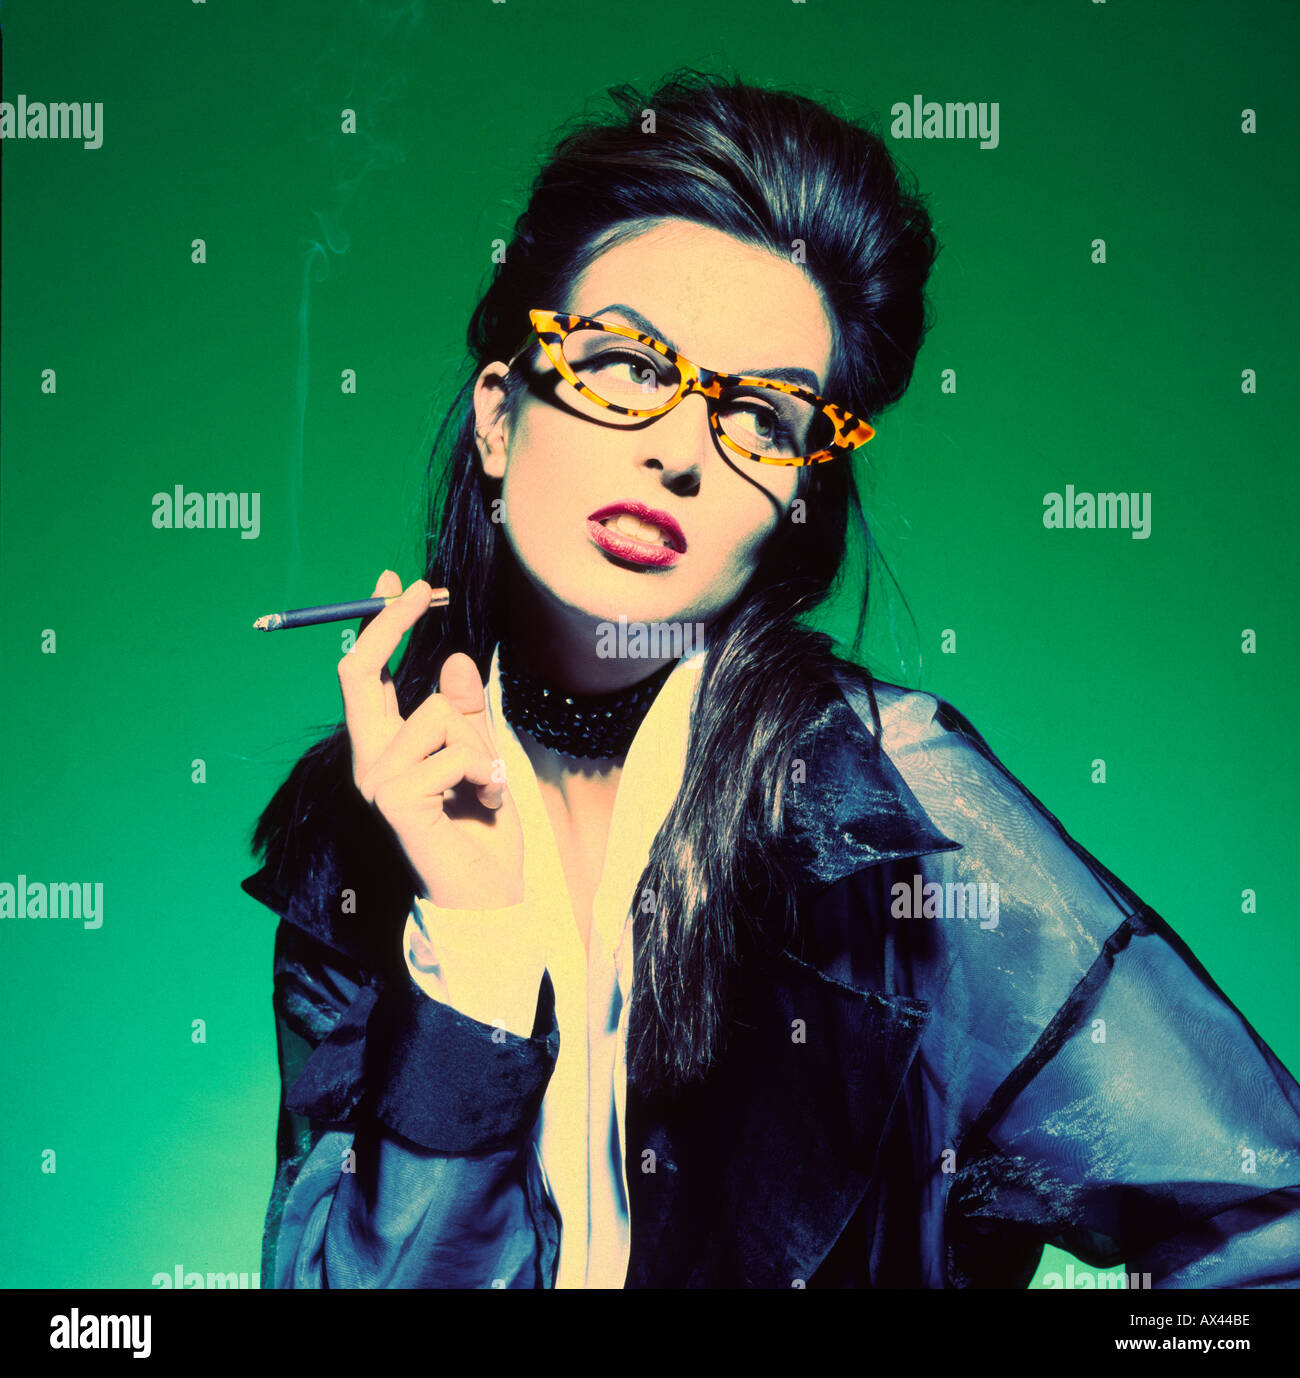 Cool young woman smoking cigarette wearing glasses and looking away - Stock Image